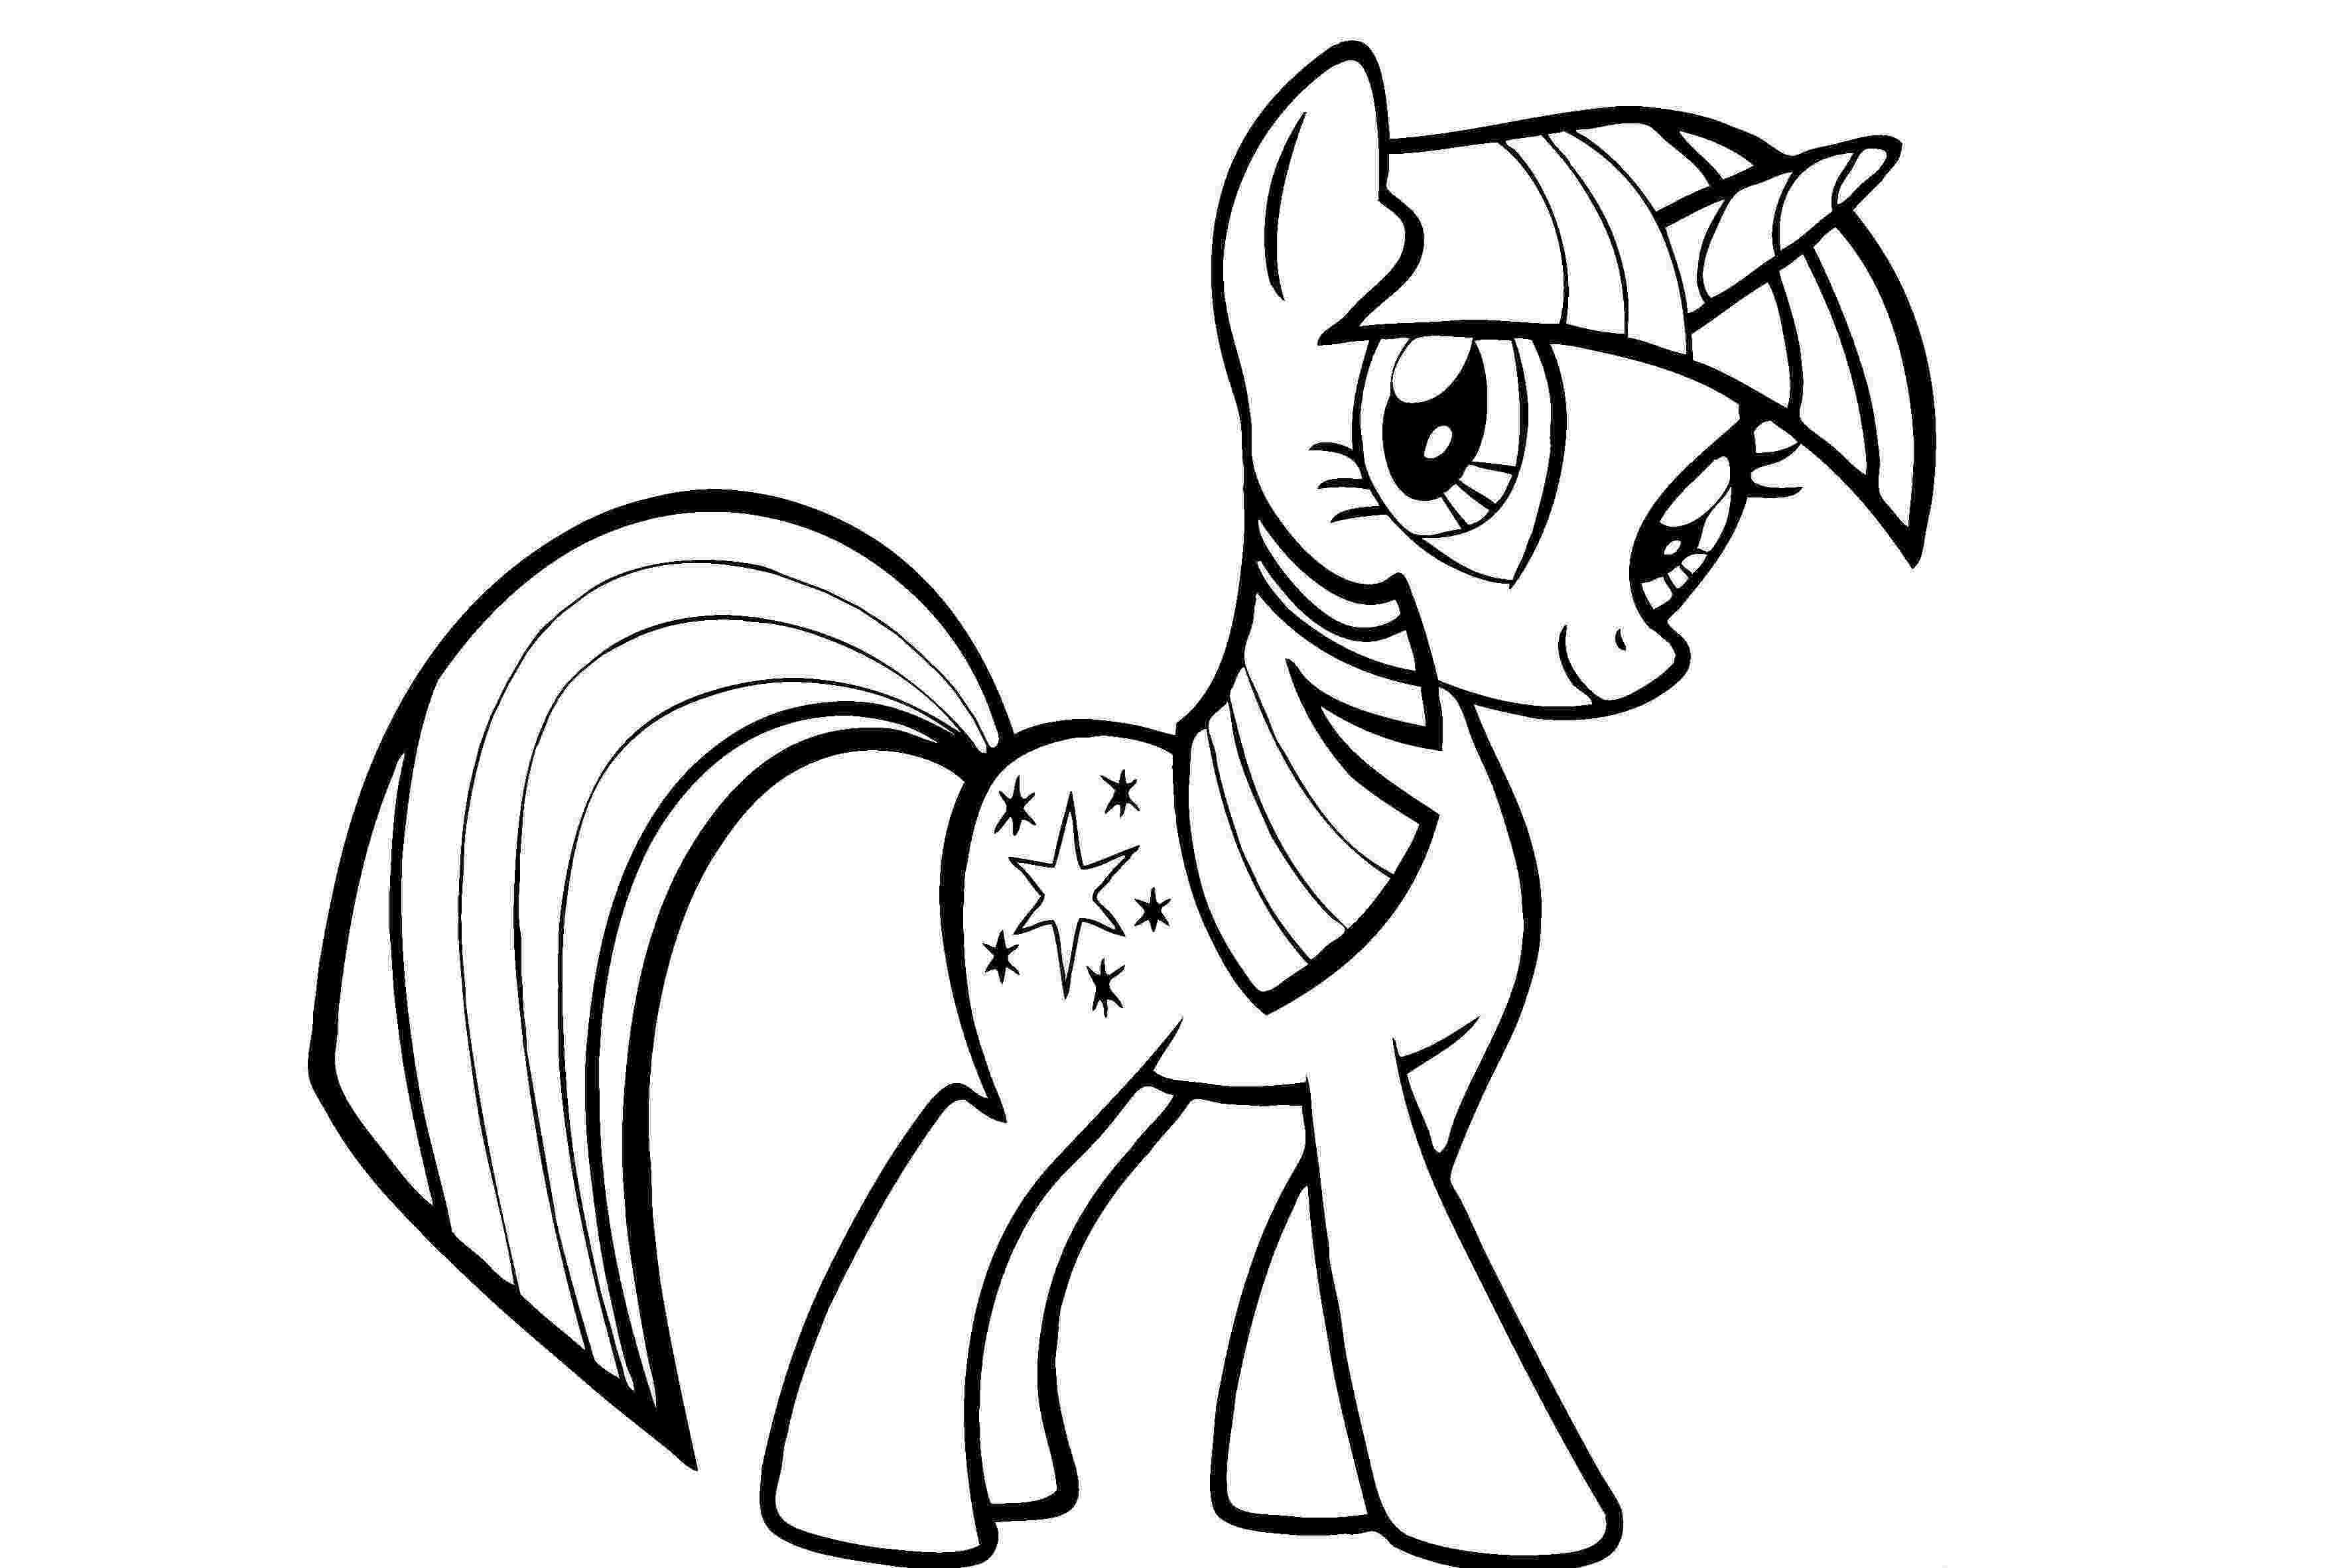 twilight sparkle colouring pages my little pónei pônei colouring sheets twilight sparkle sparkle pages twilight colouring